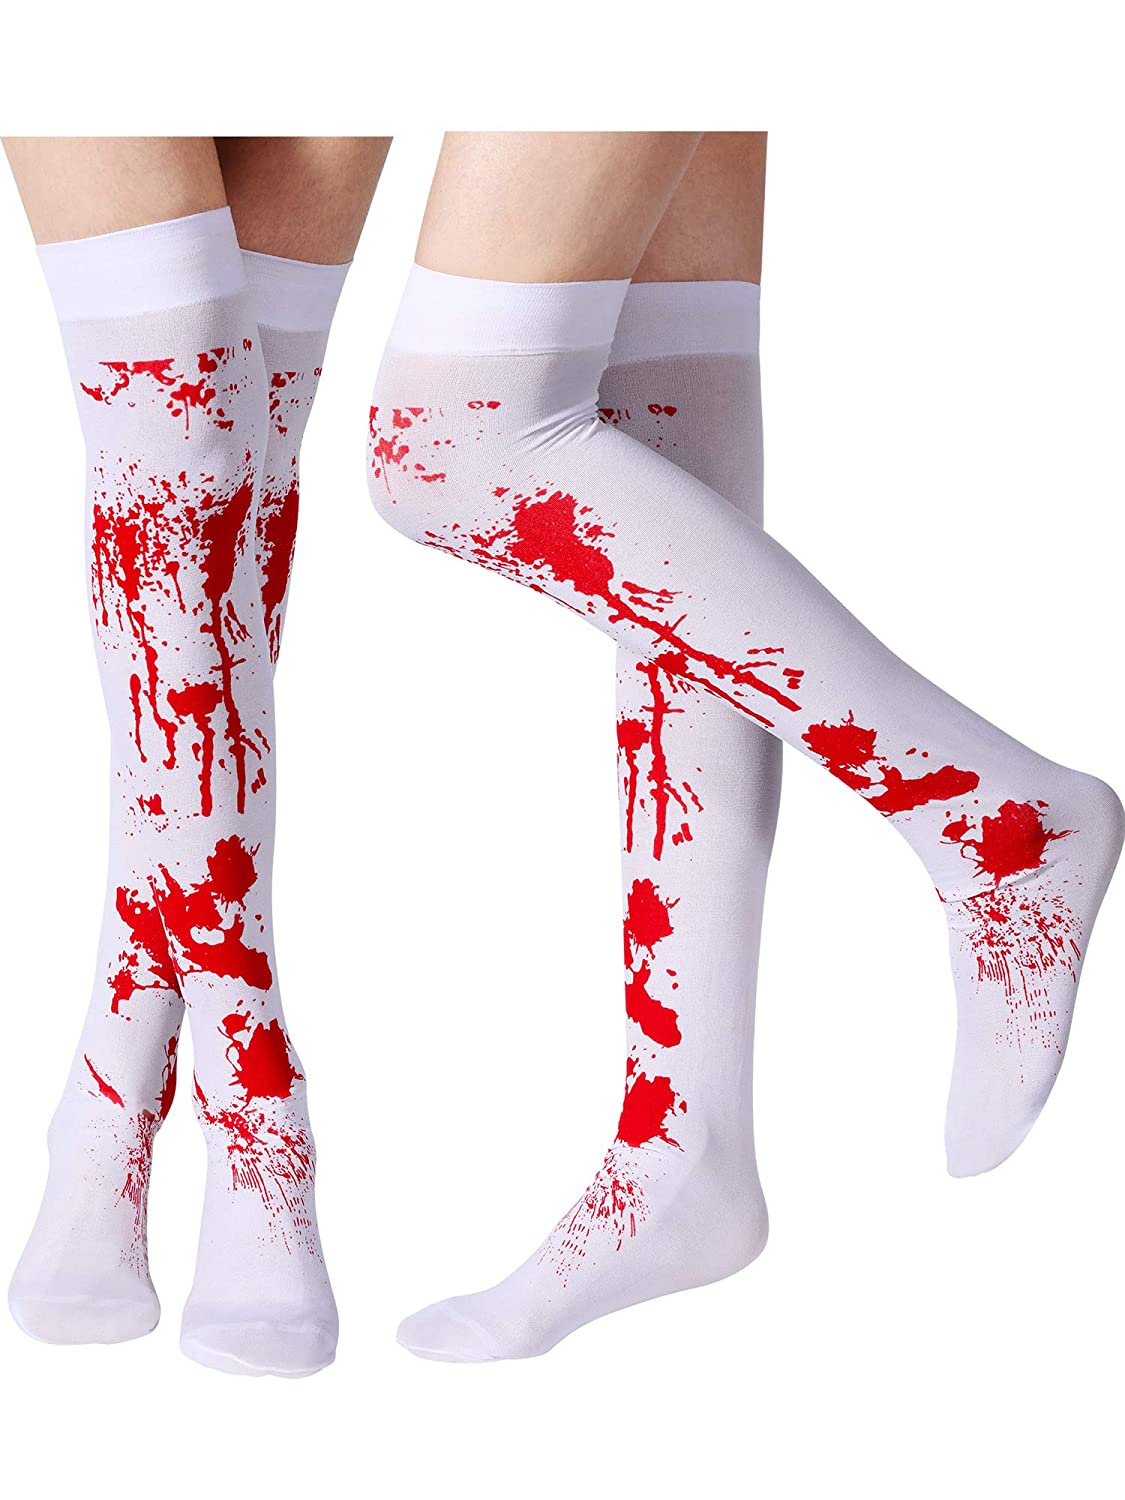 Women Over Knee Socks Blood Stained Bloody Socks Halloween Costume Supplies New